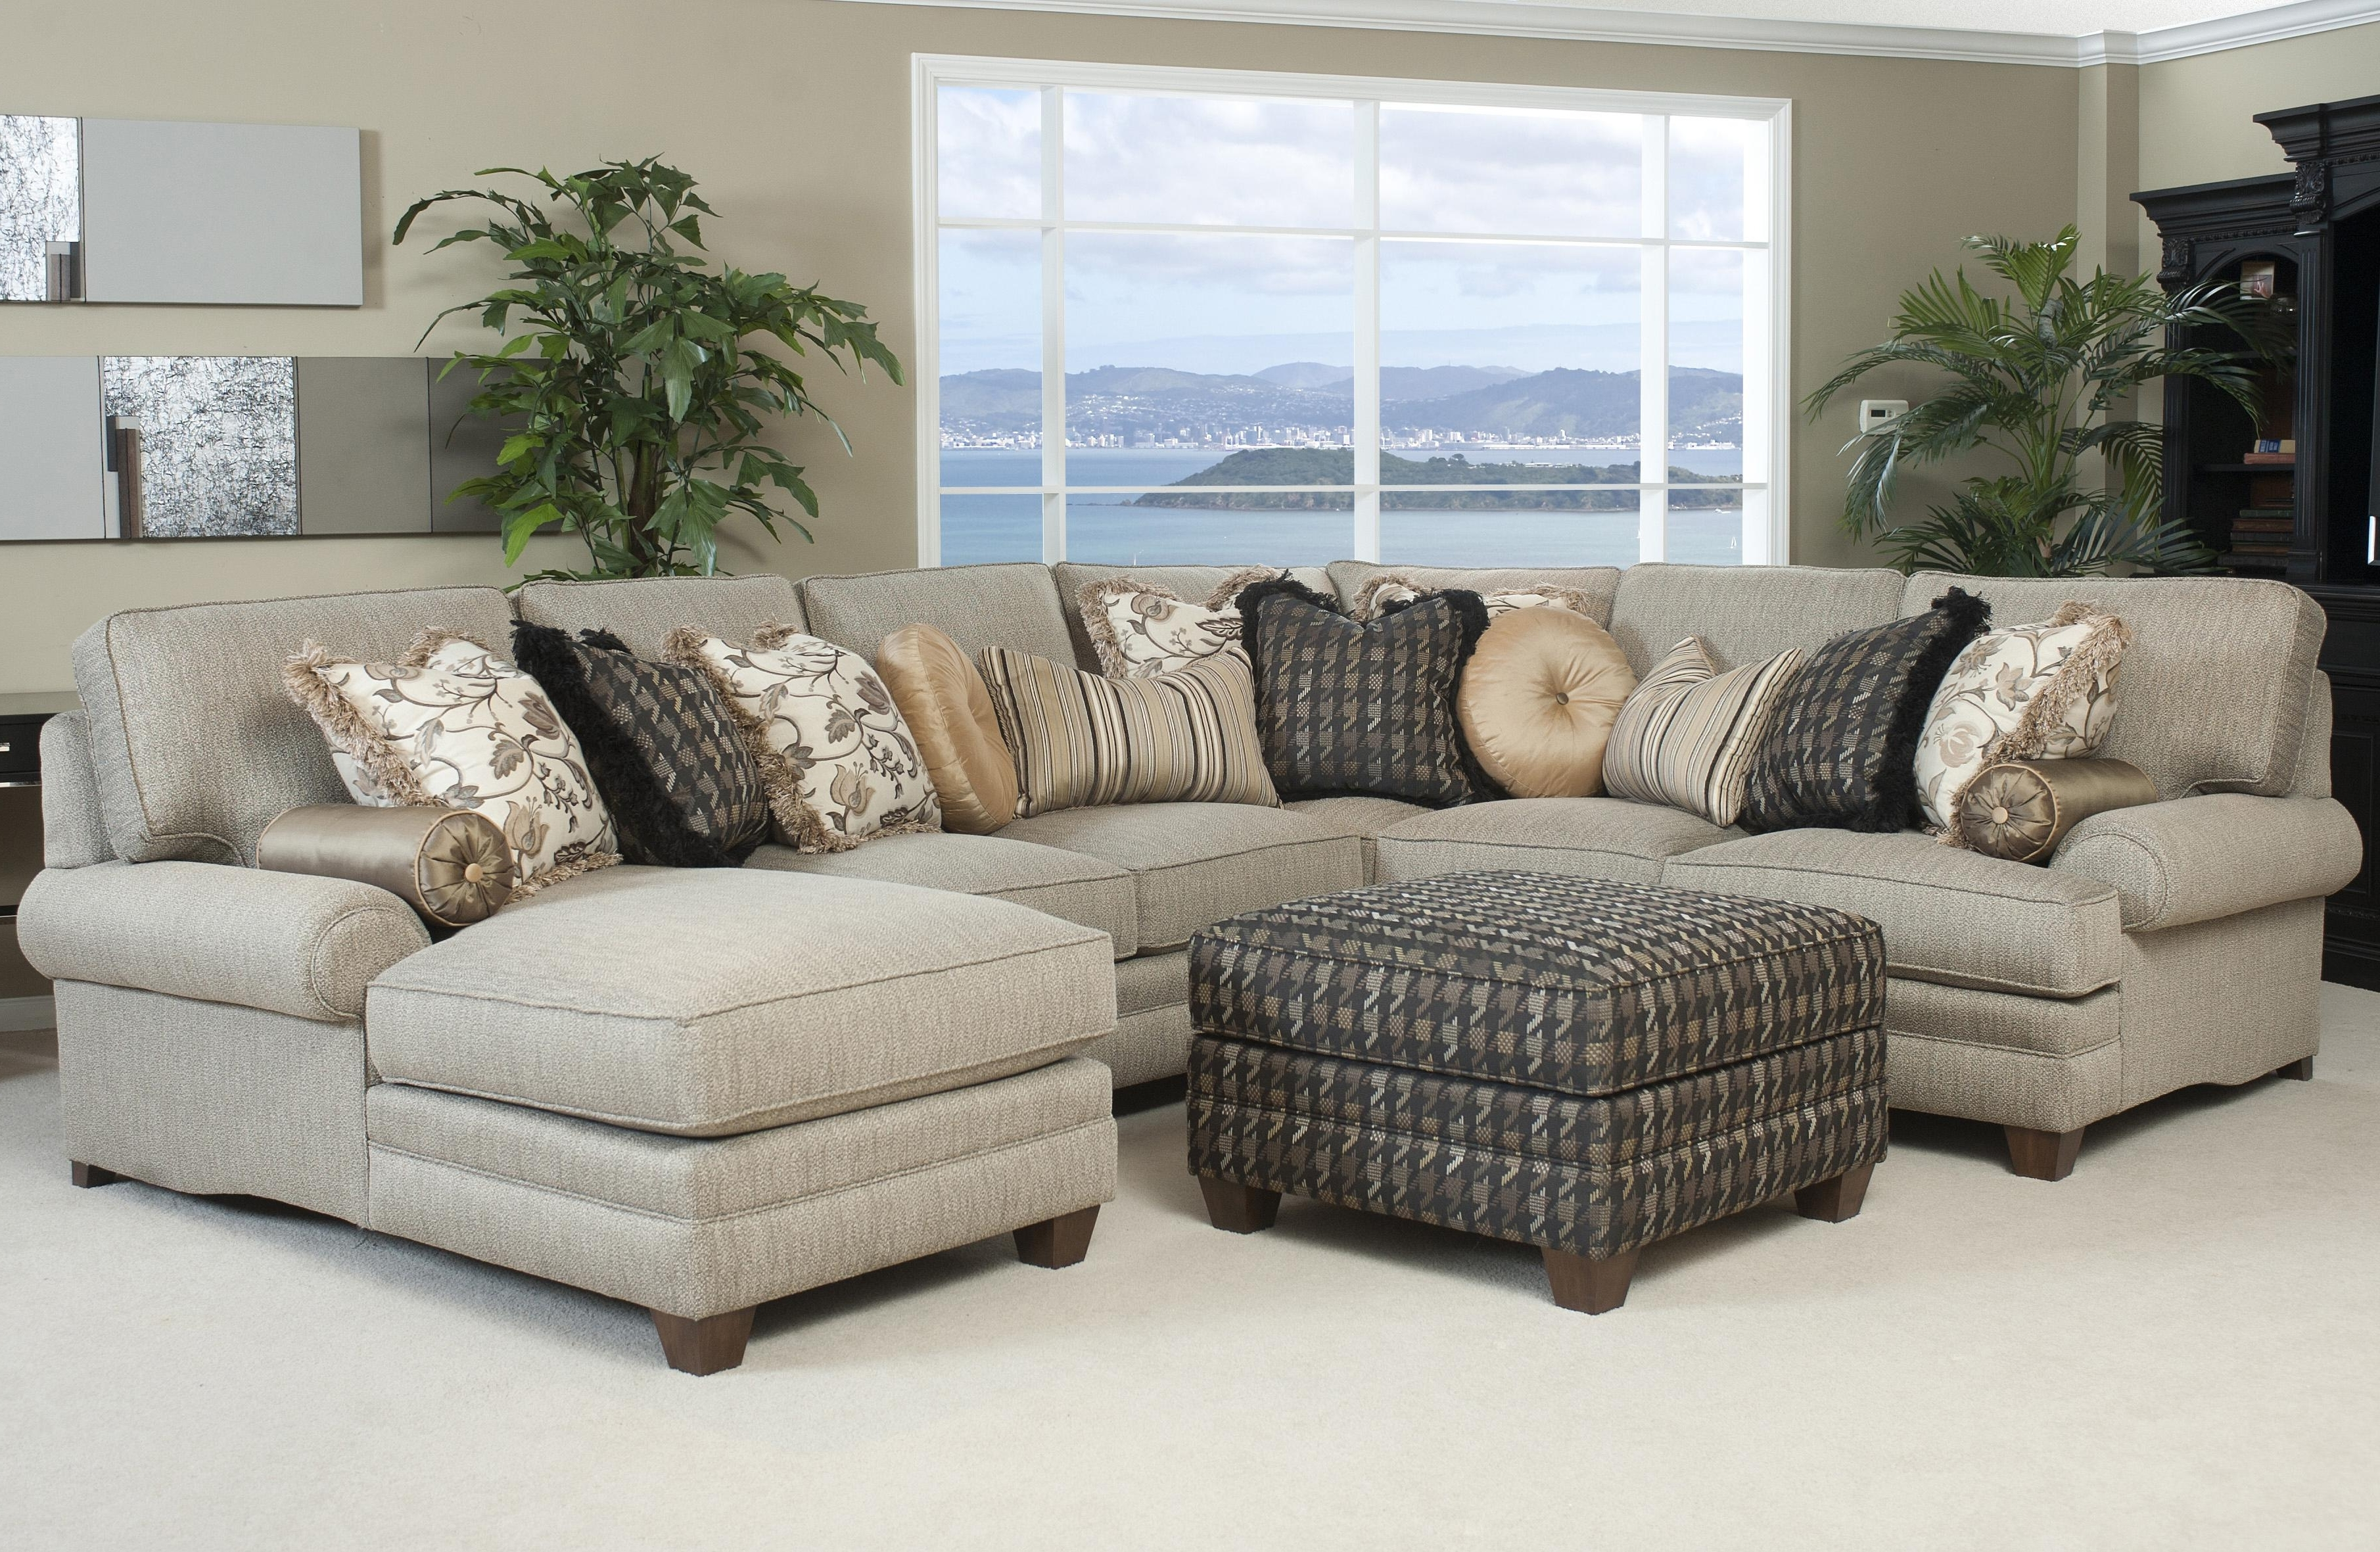 2018 Quality Sectional Sofas With Regard To Large Sectional Sofa With Ottoman (View 2 of 15)